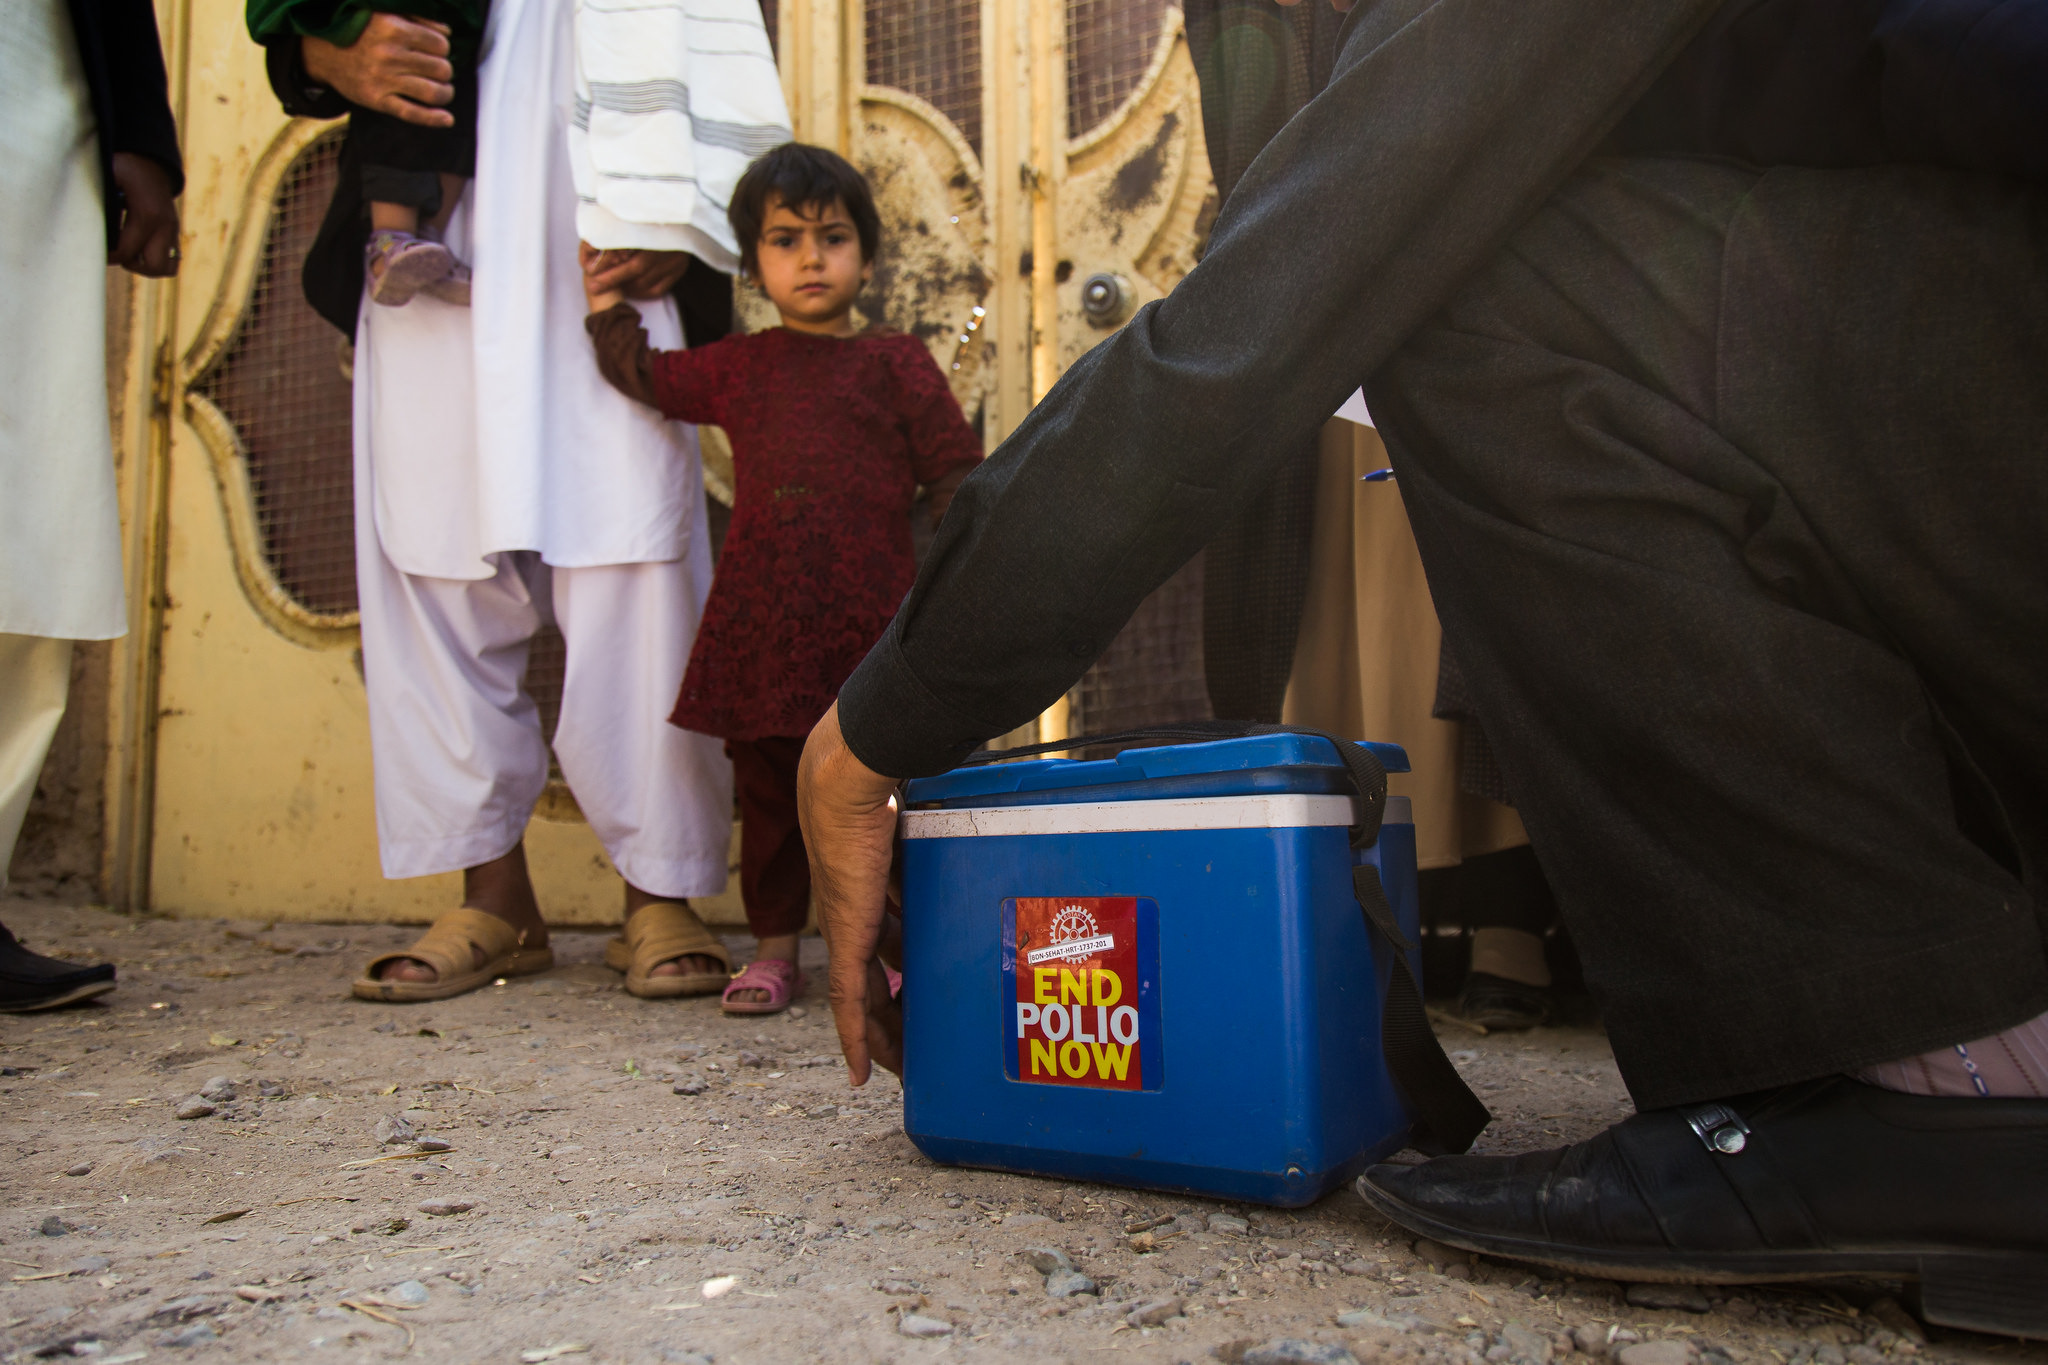 A child holding an adult's hand looks on at a man opening a box on the floor labeled: End Polio Now.